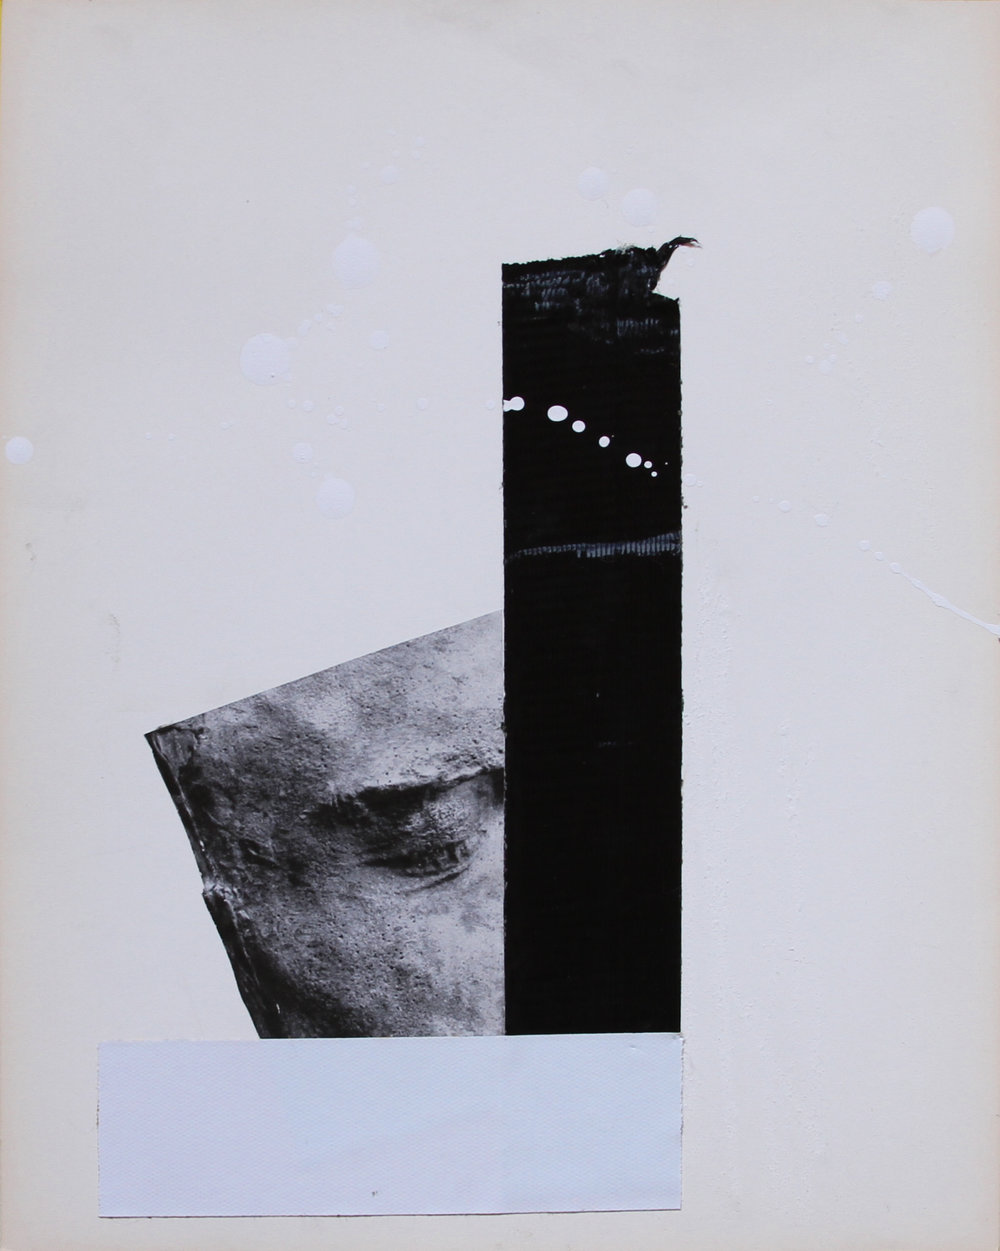 SLEEPYHEAD 02   2016 Collage and tape on paper 13 1/2 x 11 in 34 x 28 cm